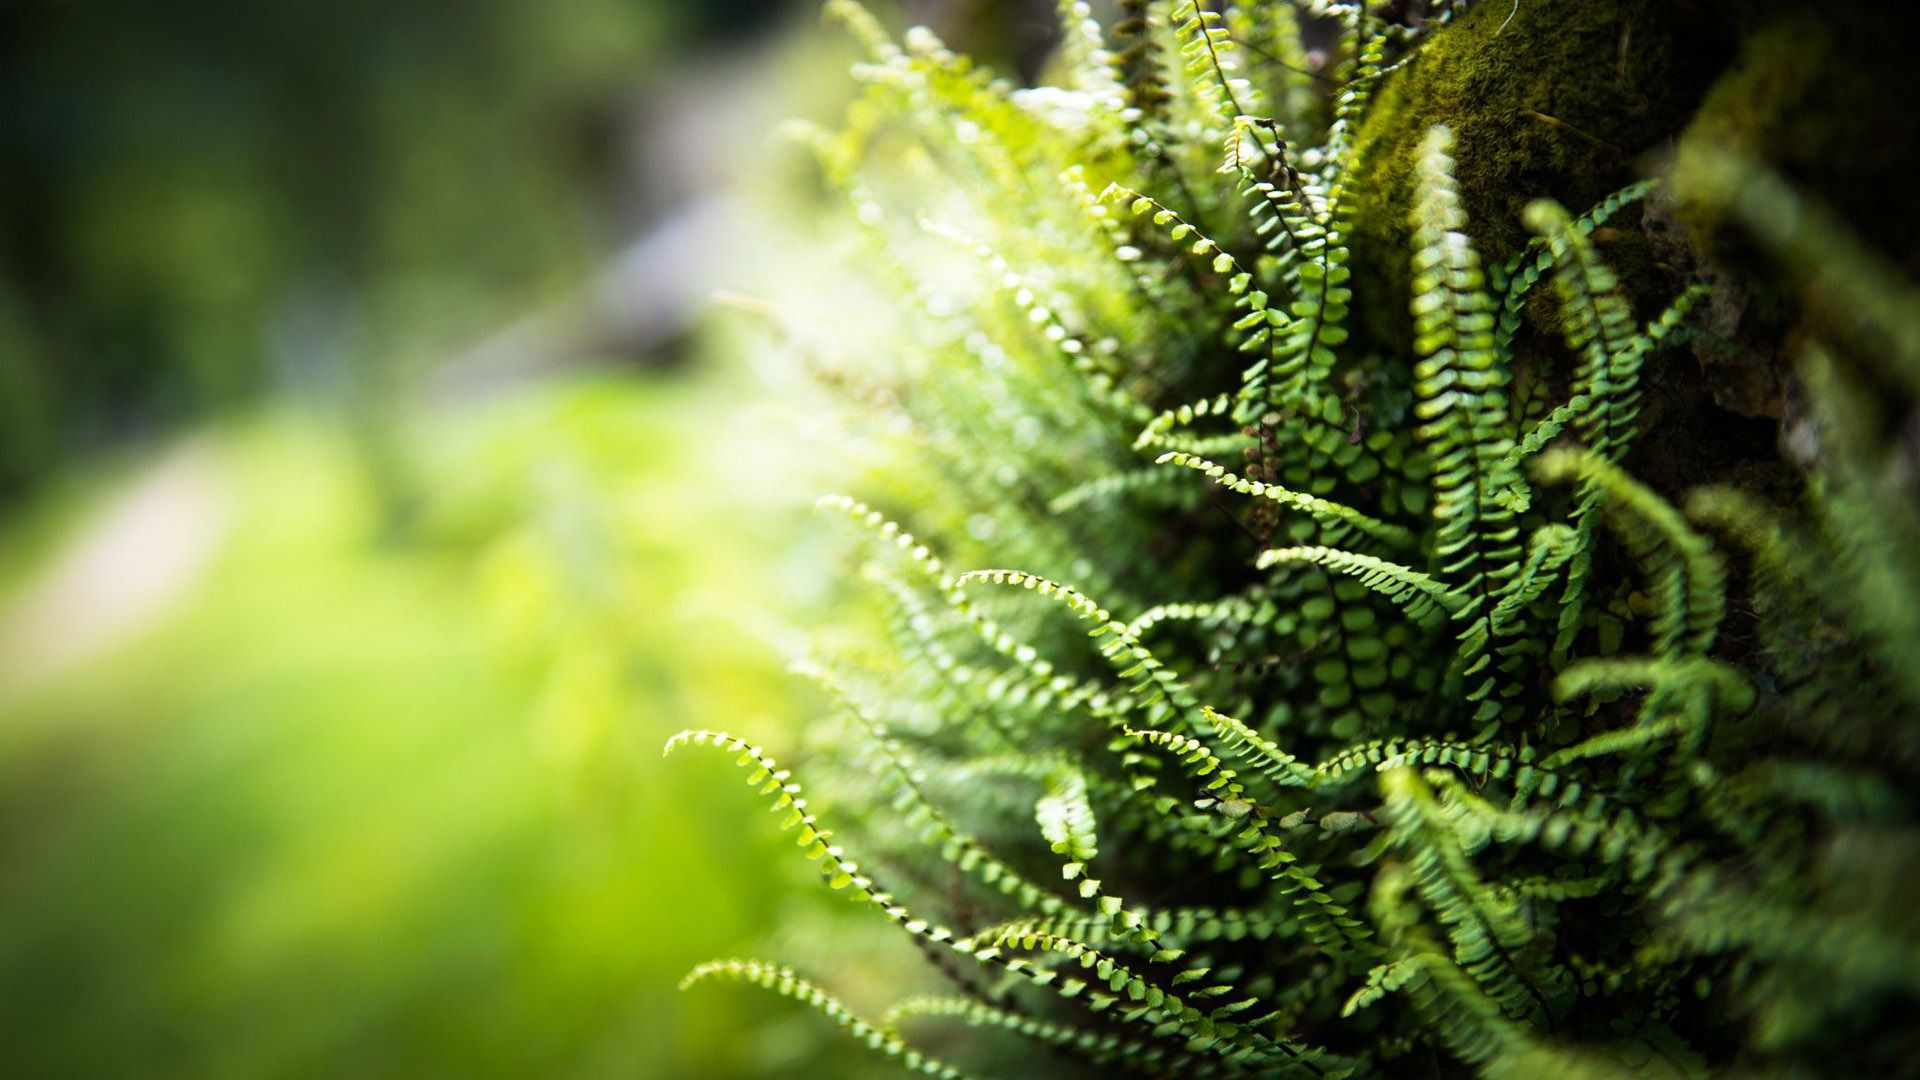 Fern Download Wallpaper